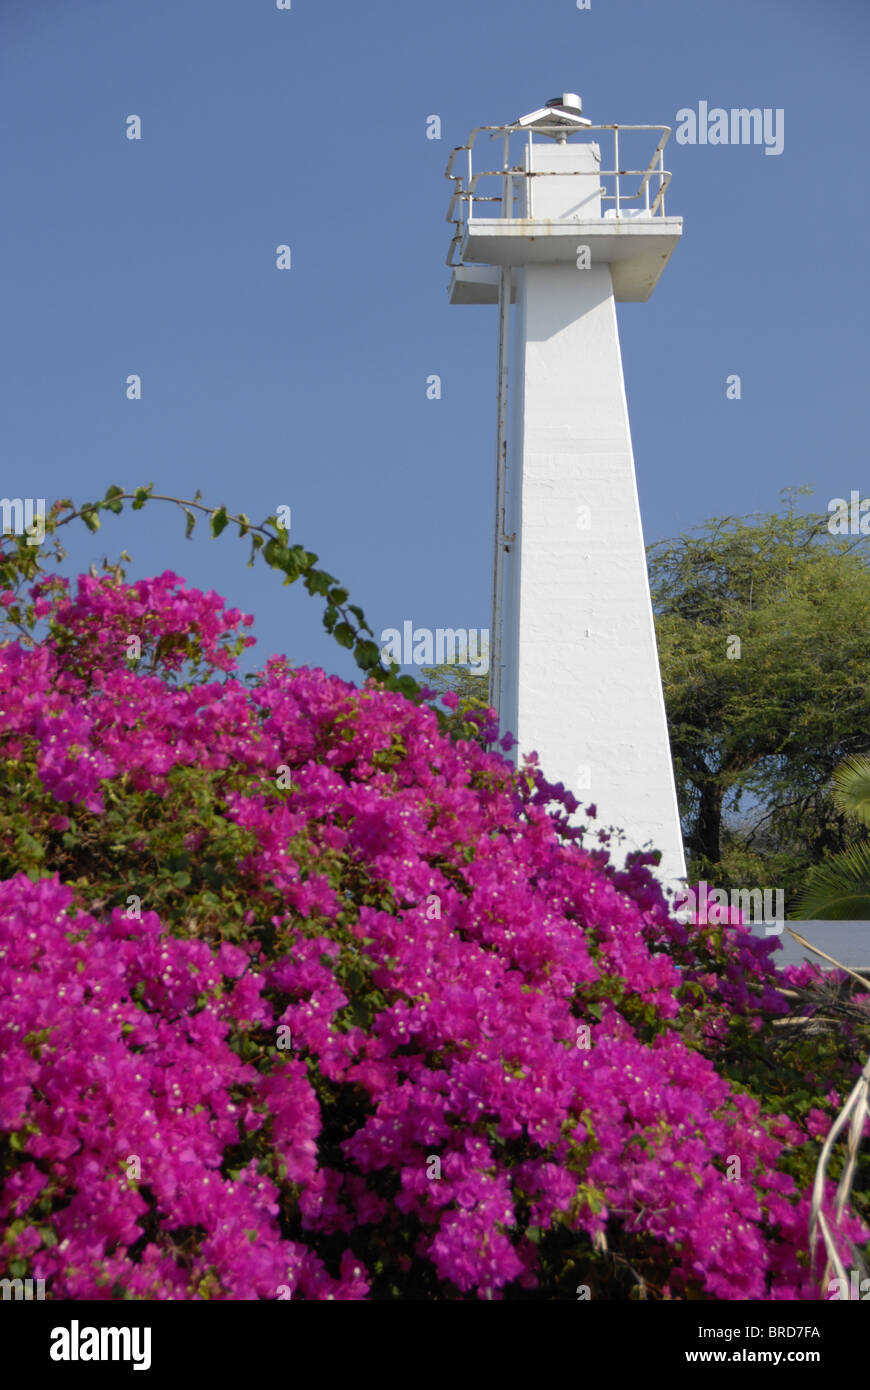 Lighthouse and flowers in LaHaina, Hawaii. Photo taken with Nikon D200 camera. - Stock Image